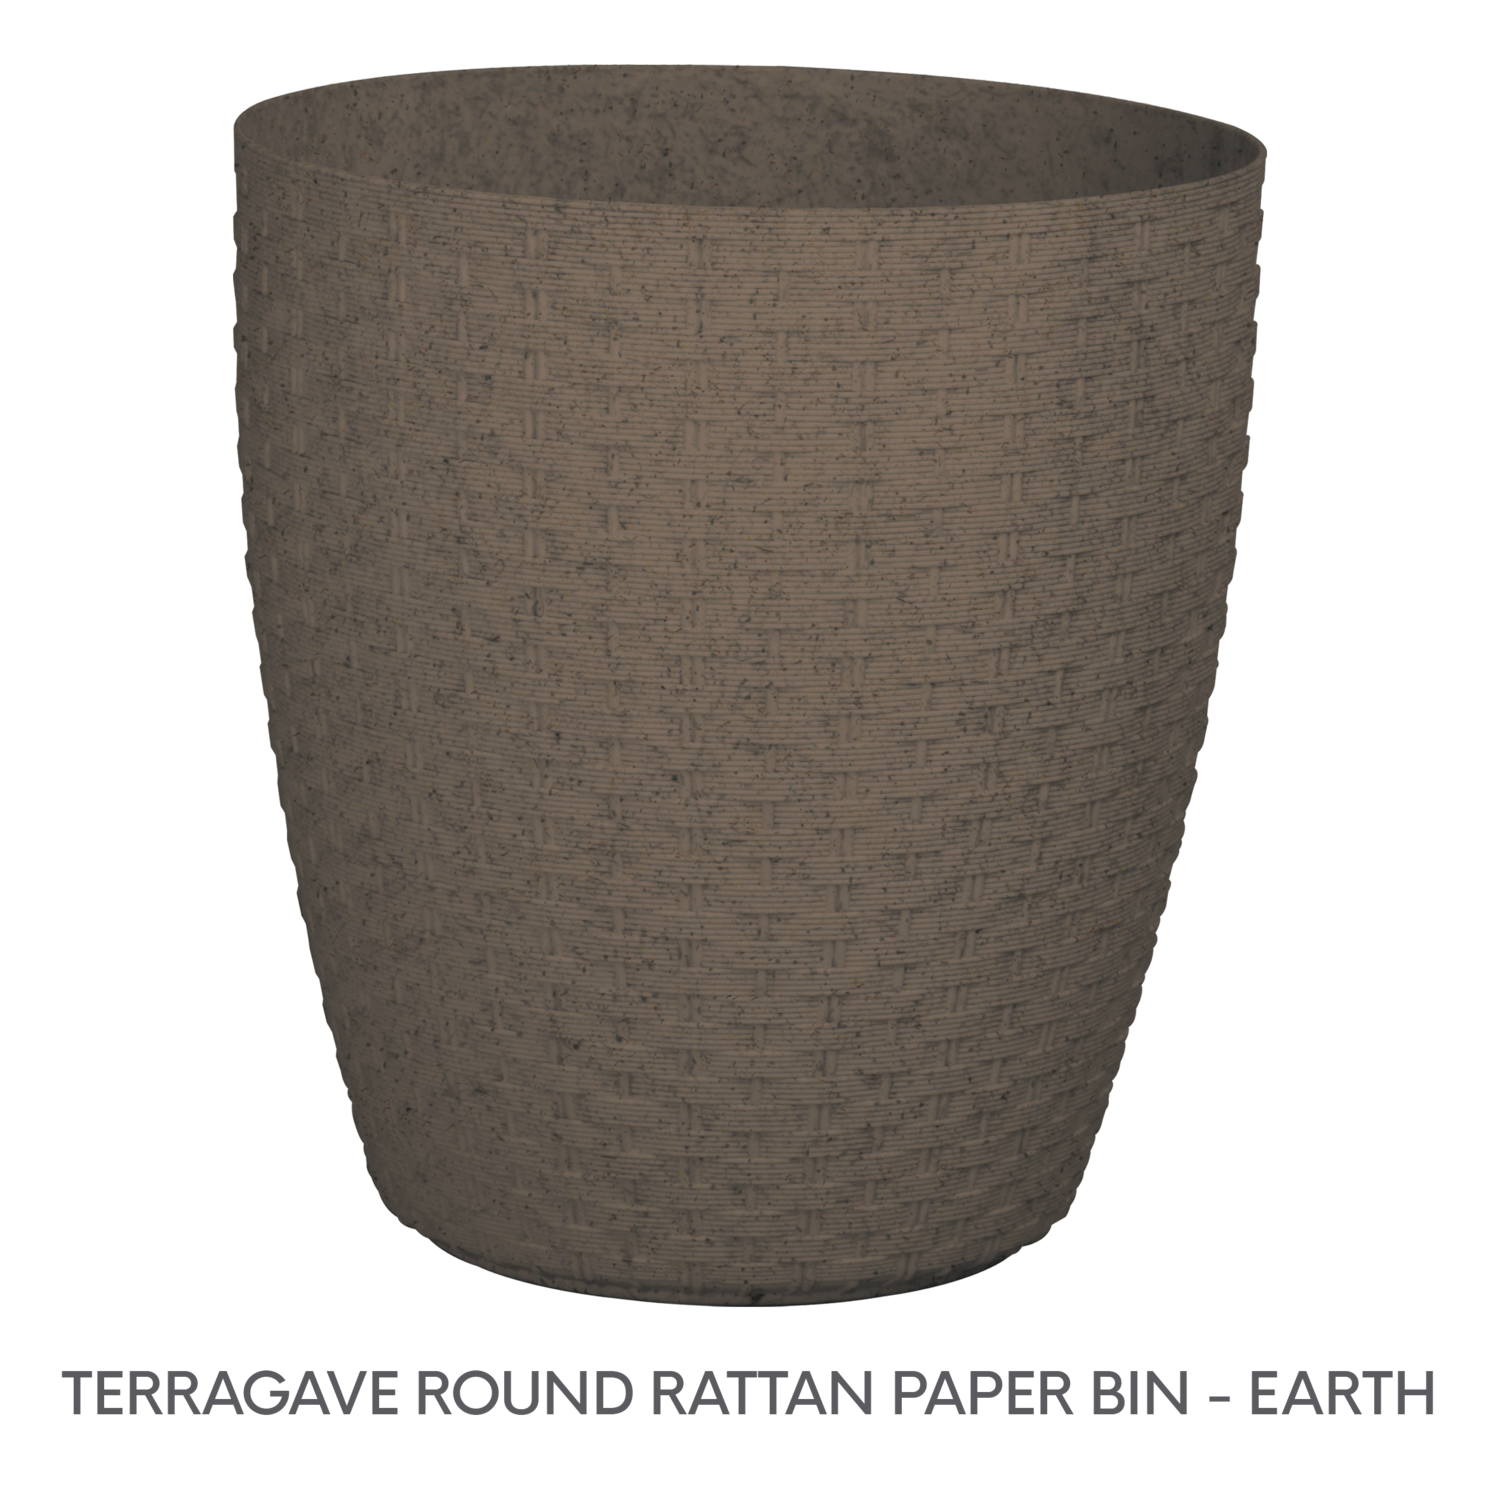 1 TERRAGAVE ROUND RATTAN PAPER BIN - EARTH.png